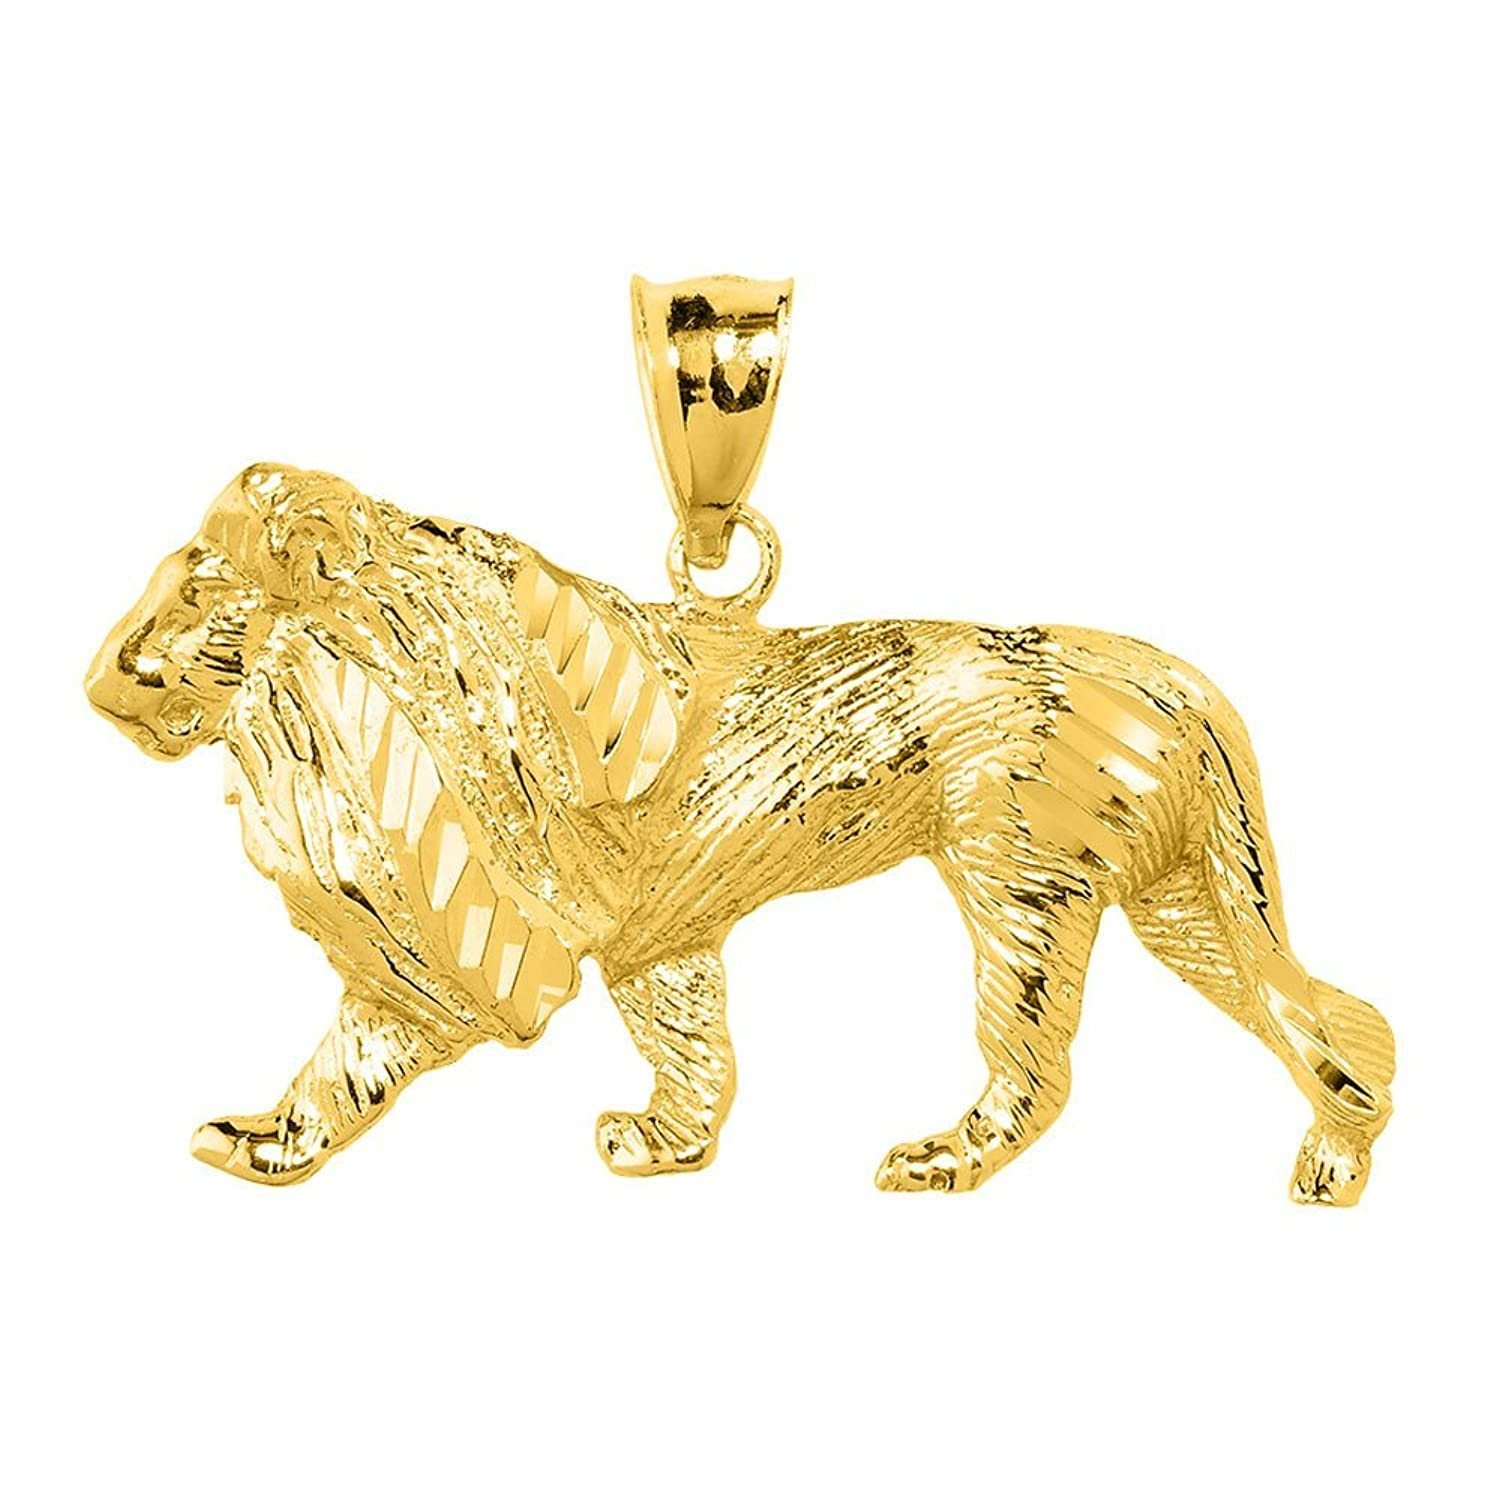 pendants max fbx cgtrader stl animal obj jewelry print model models head lion dwg pendant